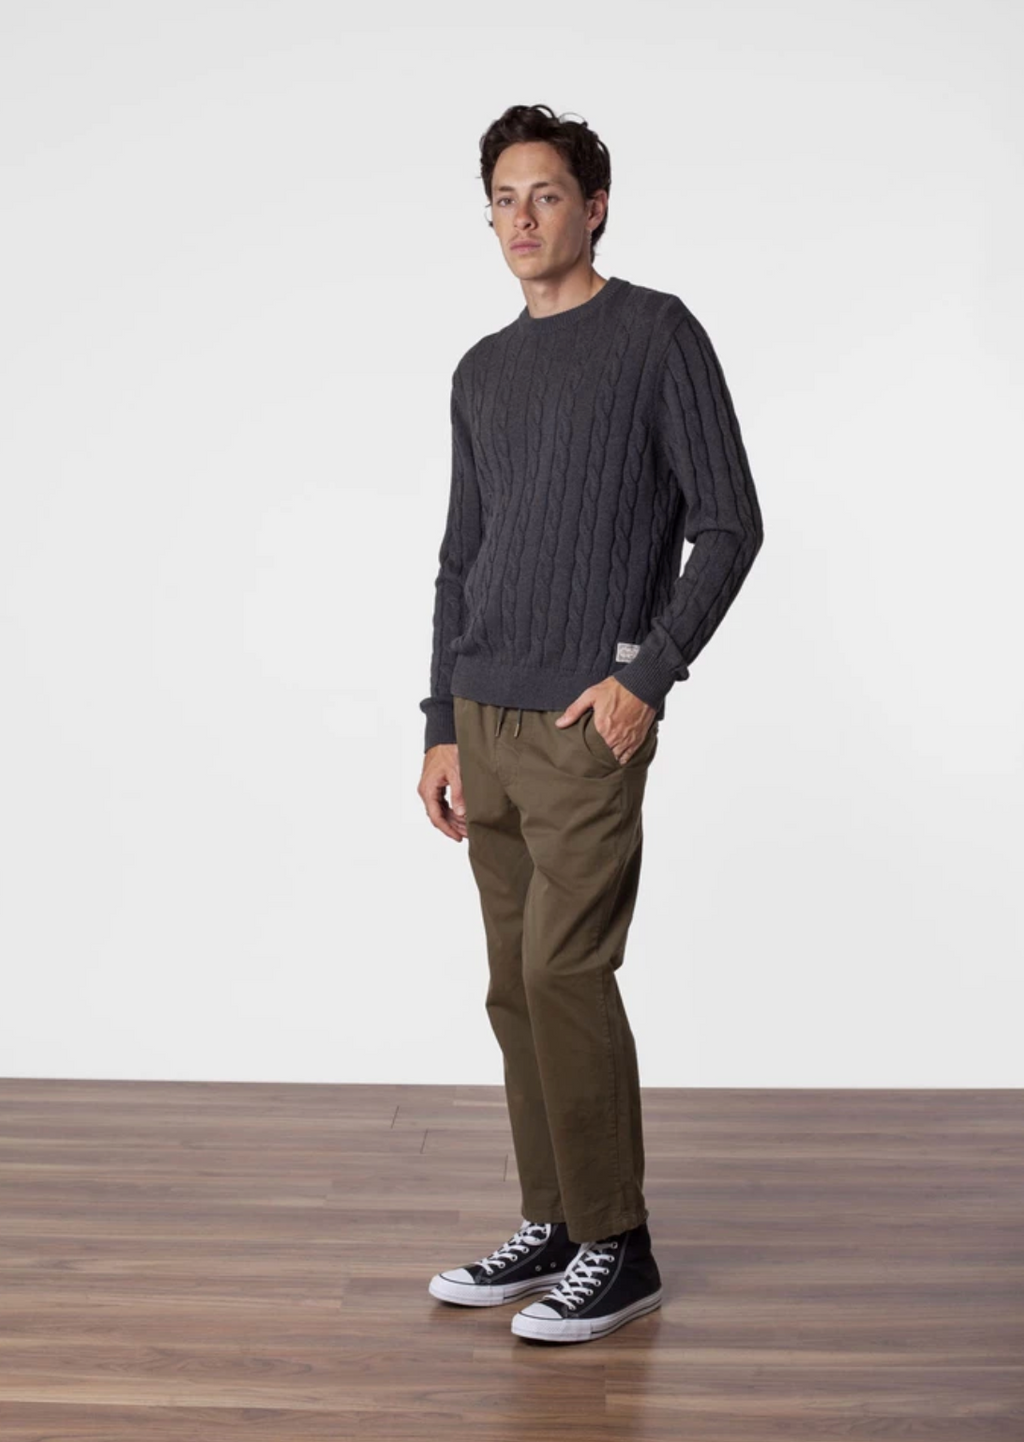 Fisherman Knit- Charcoal